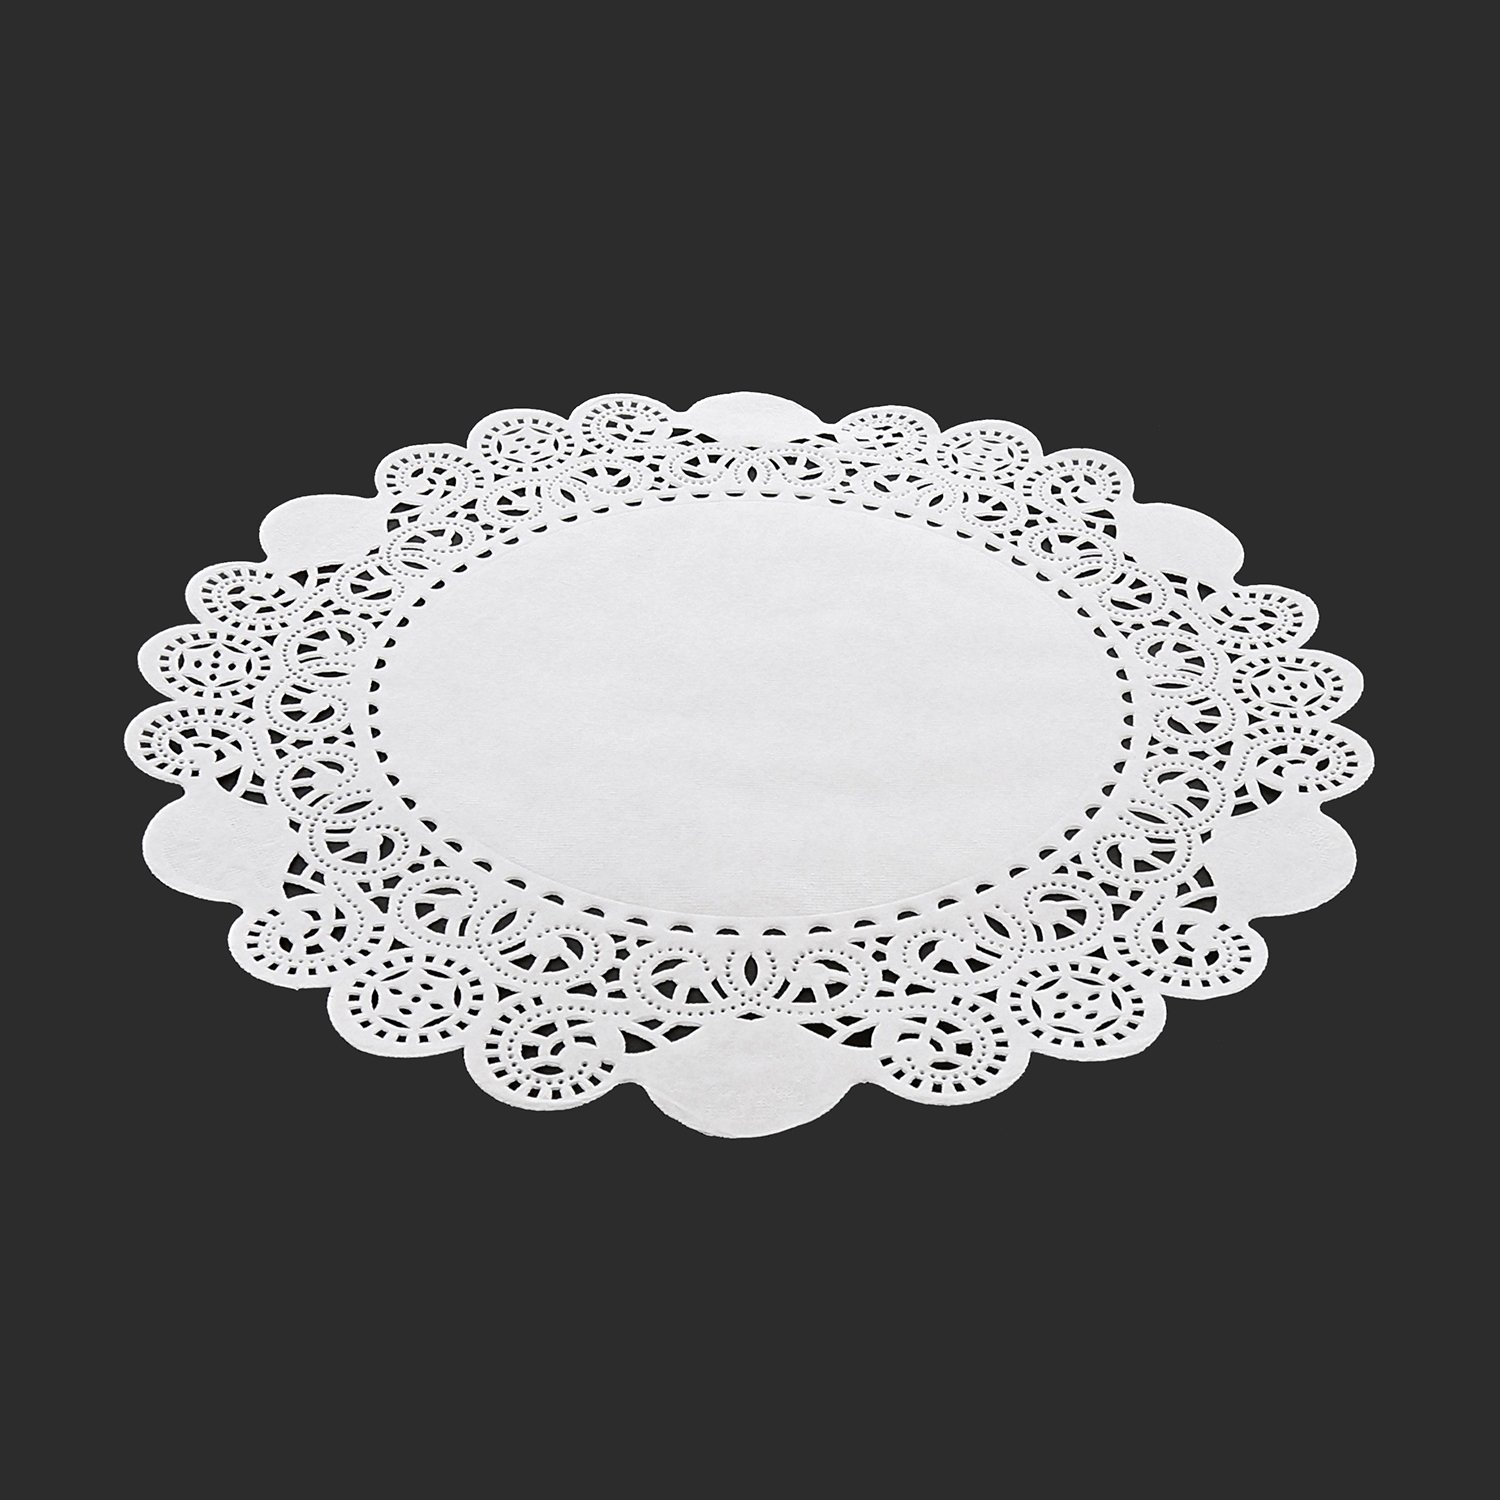 Royal 10'' Disposable Paper Lace Doilies, Case of 5000 by Royal (Image #2)